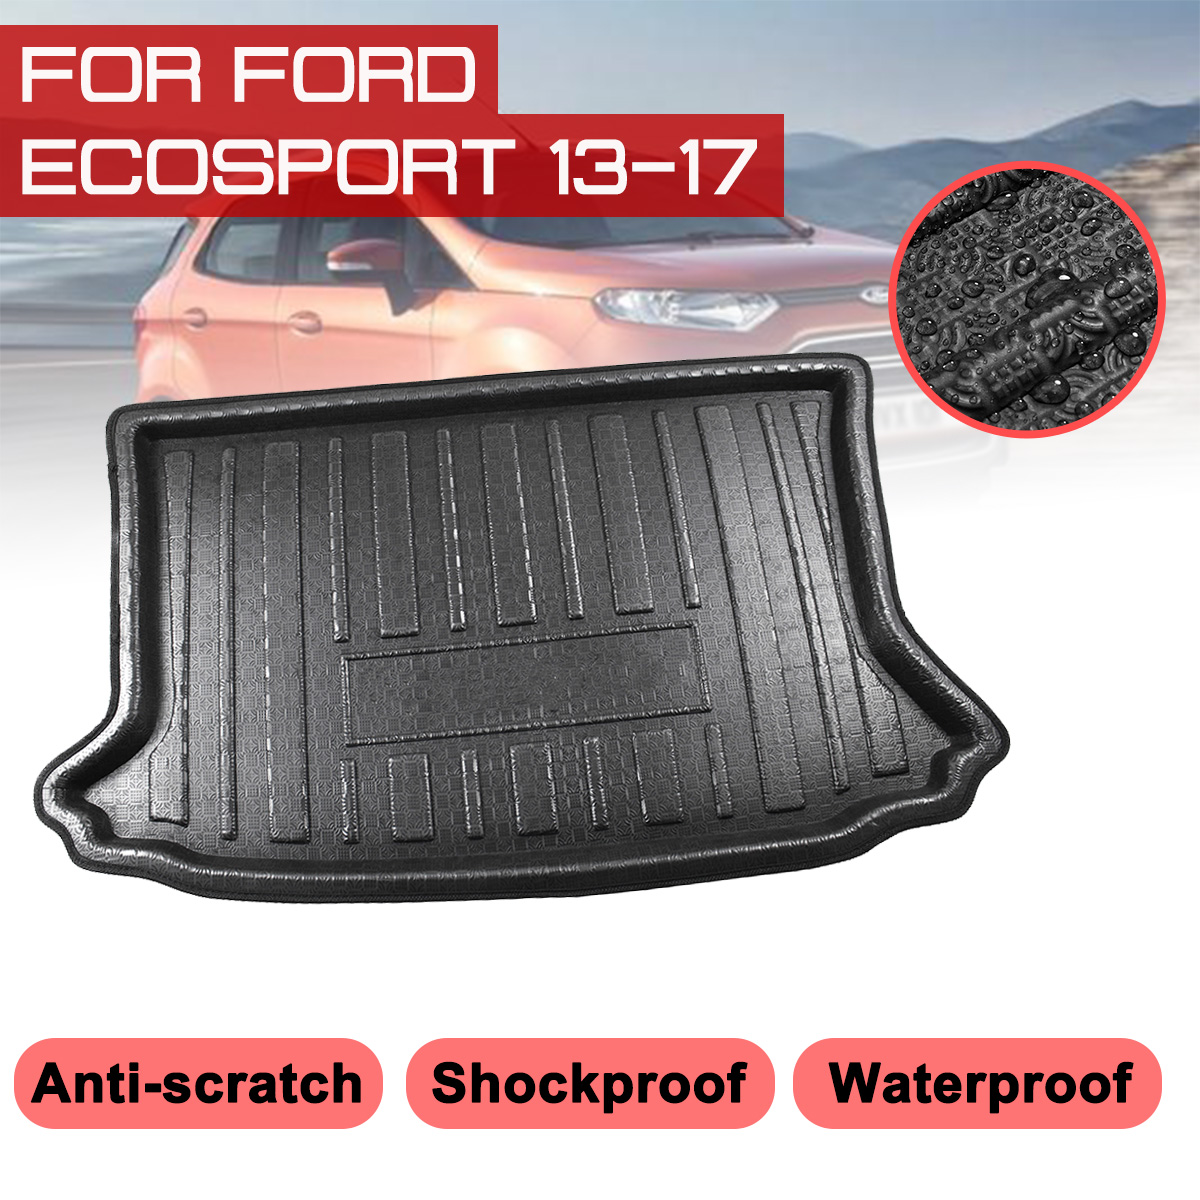 Car Rear Trunk Boot Mat For Ford Ecosport 2013 2014 2015 2016 2017 Waterproof Floor Mats Carpet Anti Mud Tray Cargo Liner